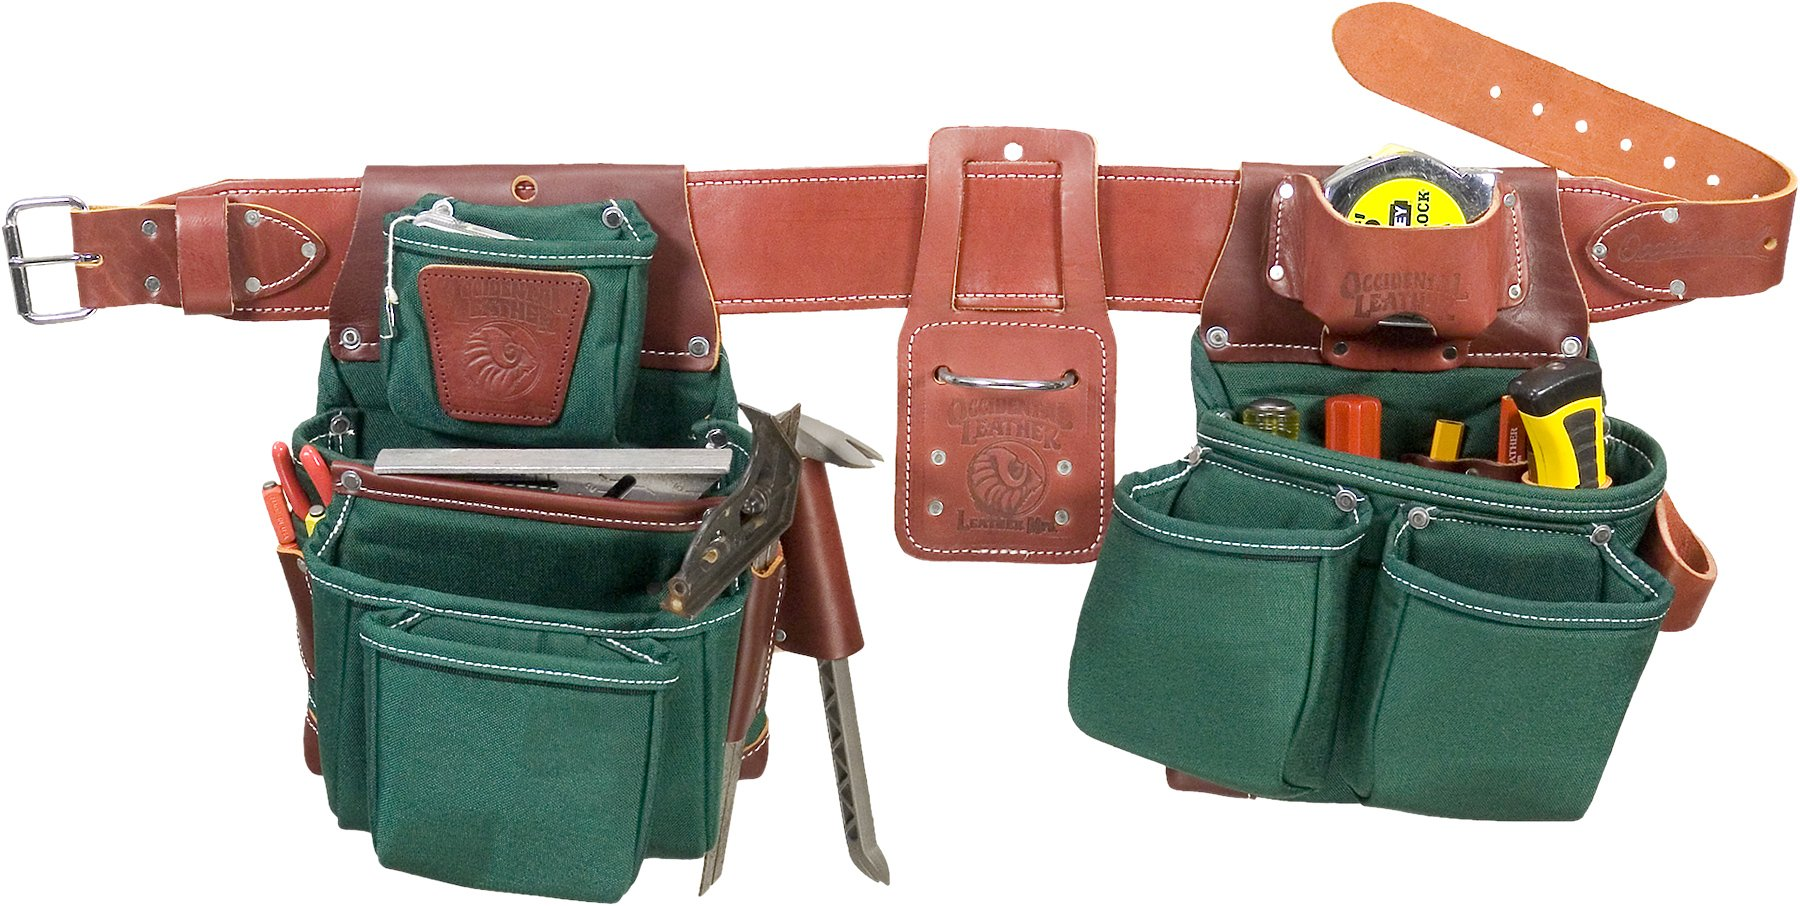 Occidental Leather 8089 SM OxyLights 7 Bag Framer Set